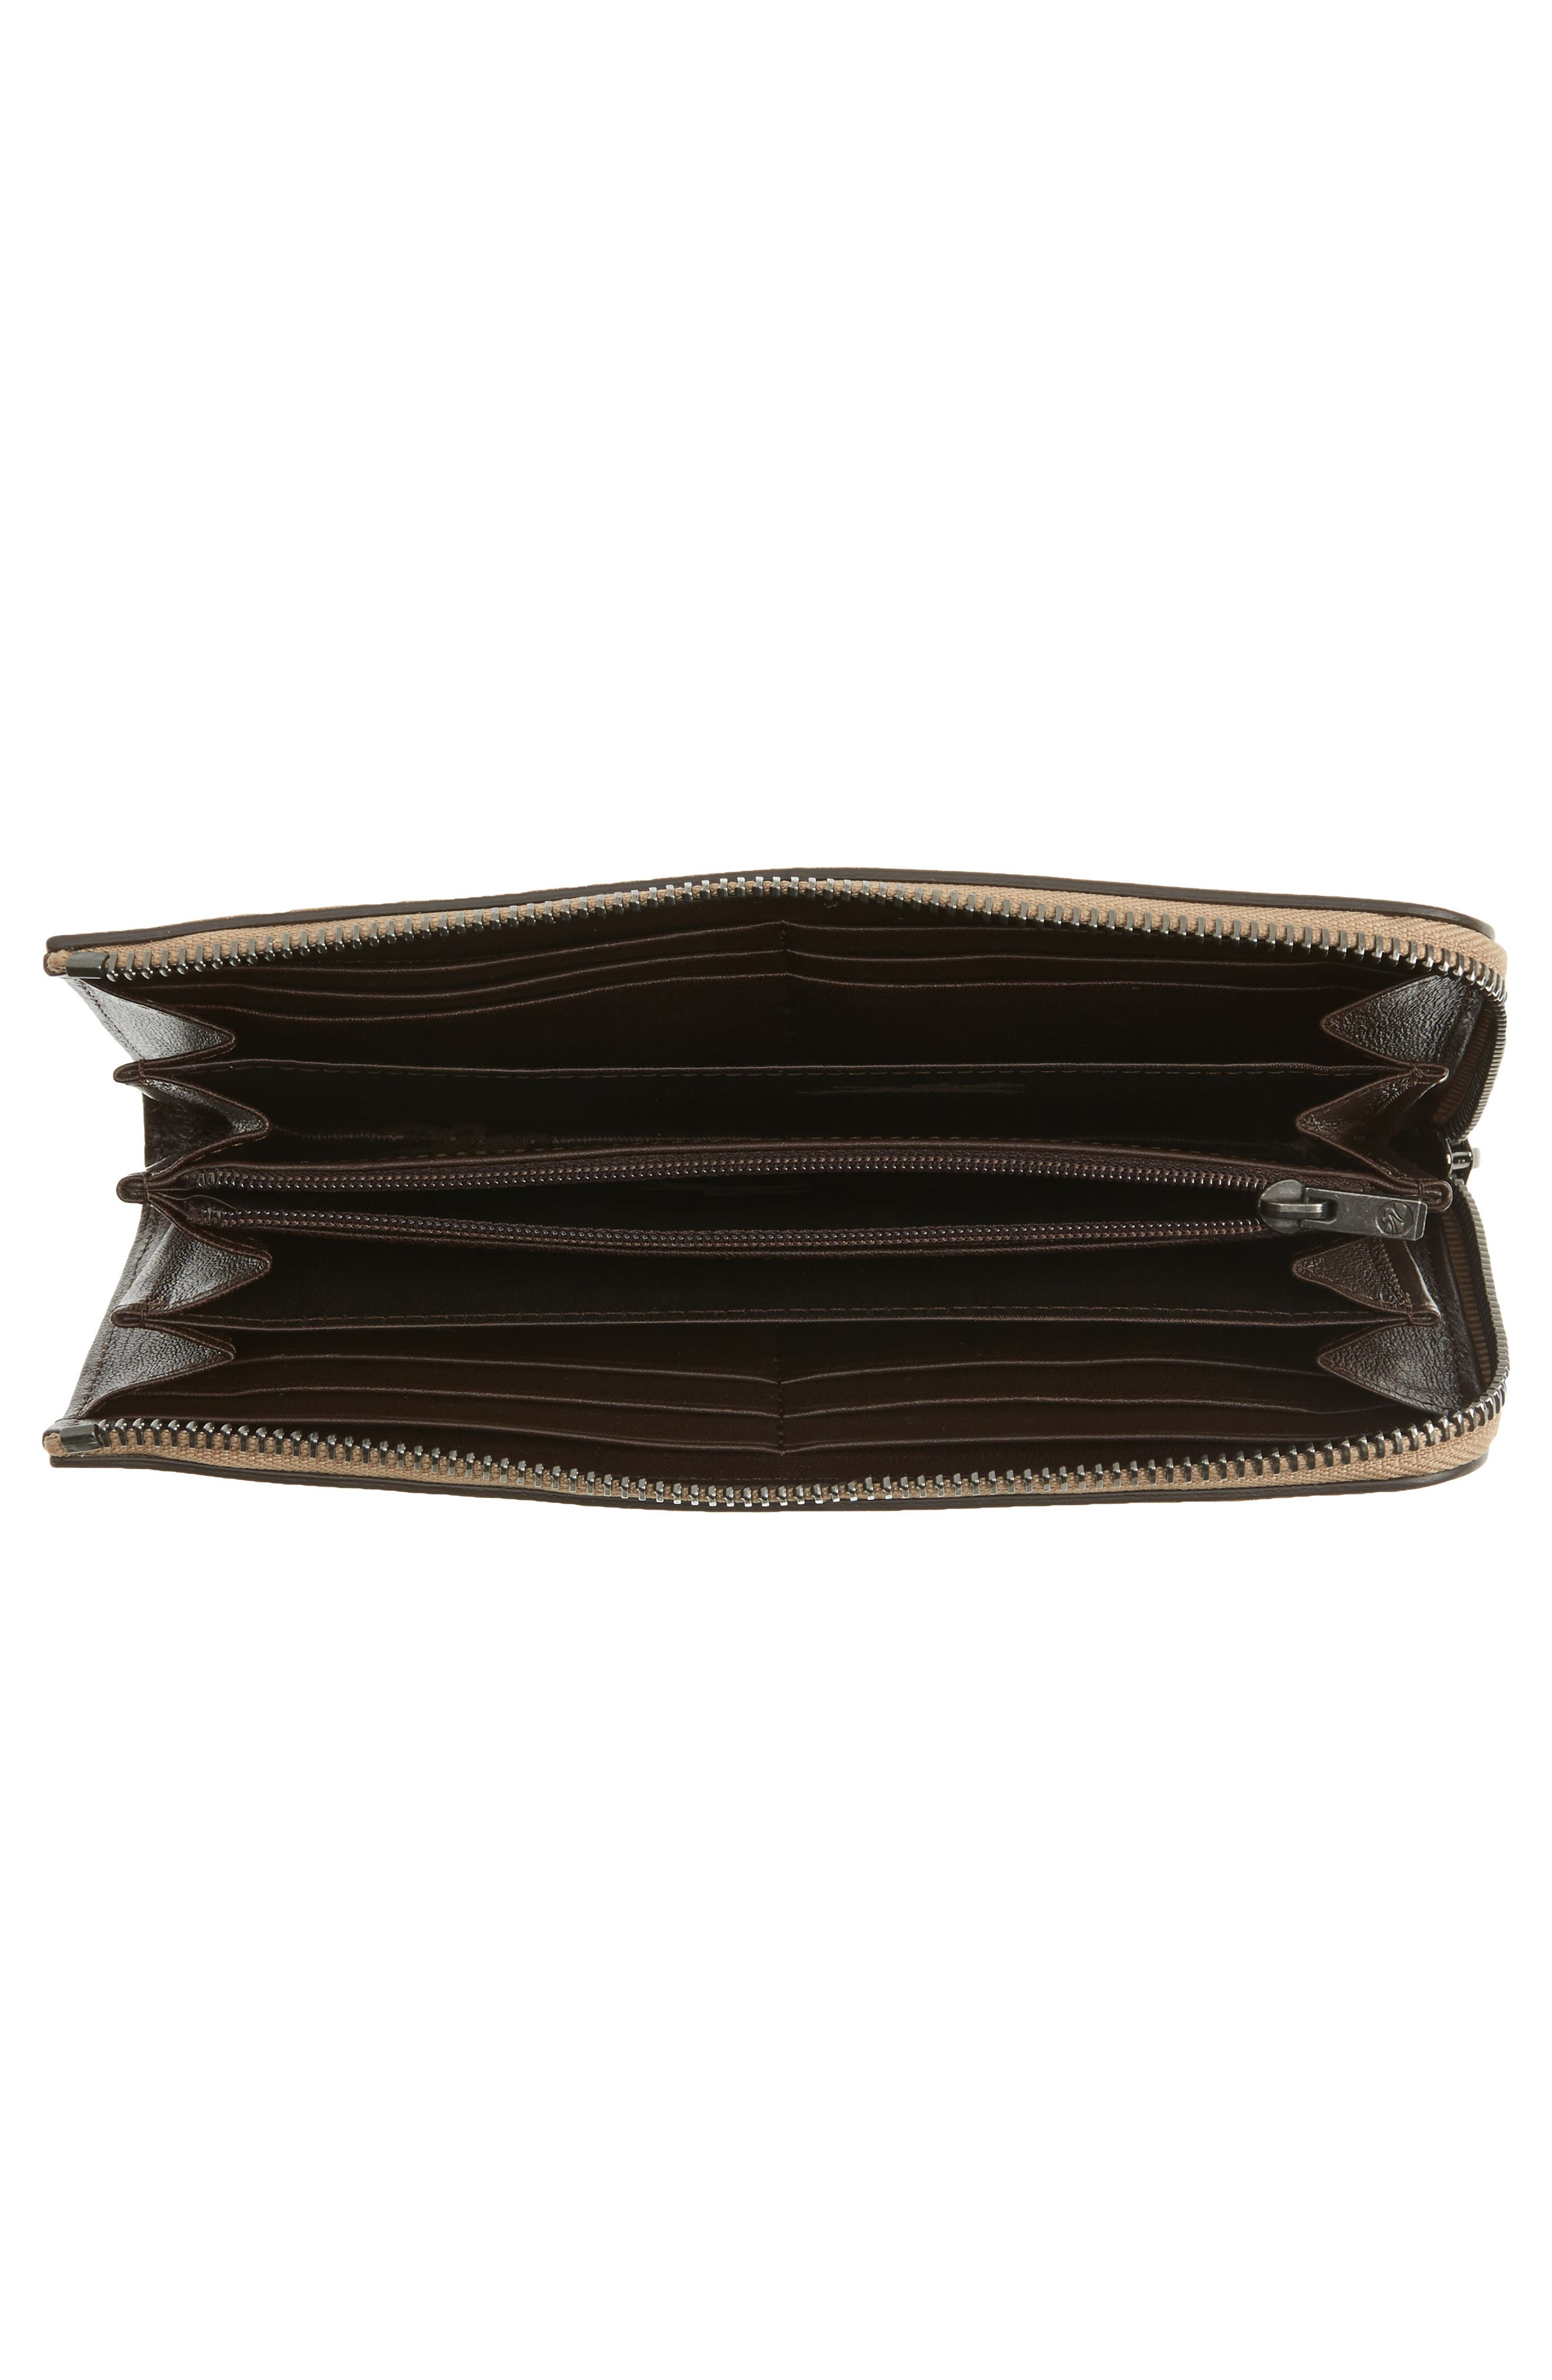 3D Leather Wallet,                             Alternate thumbnail 3, color,                             Taupe